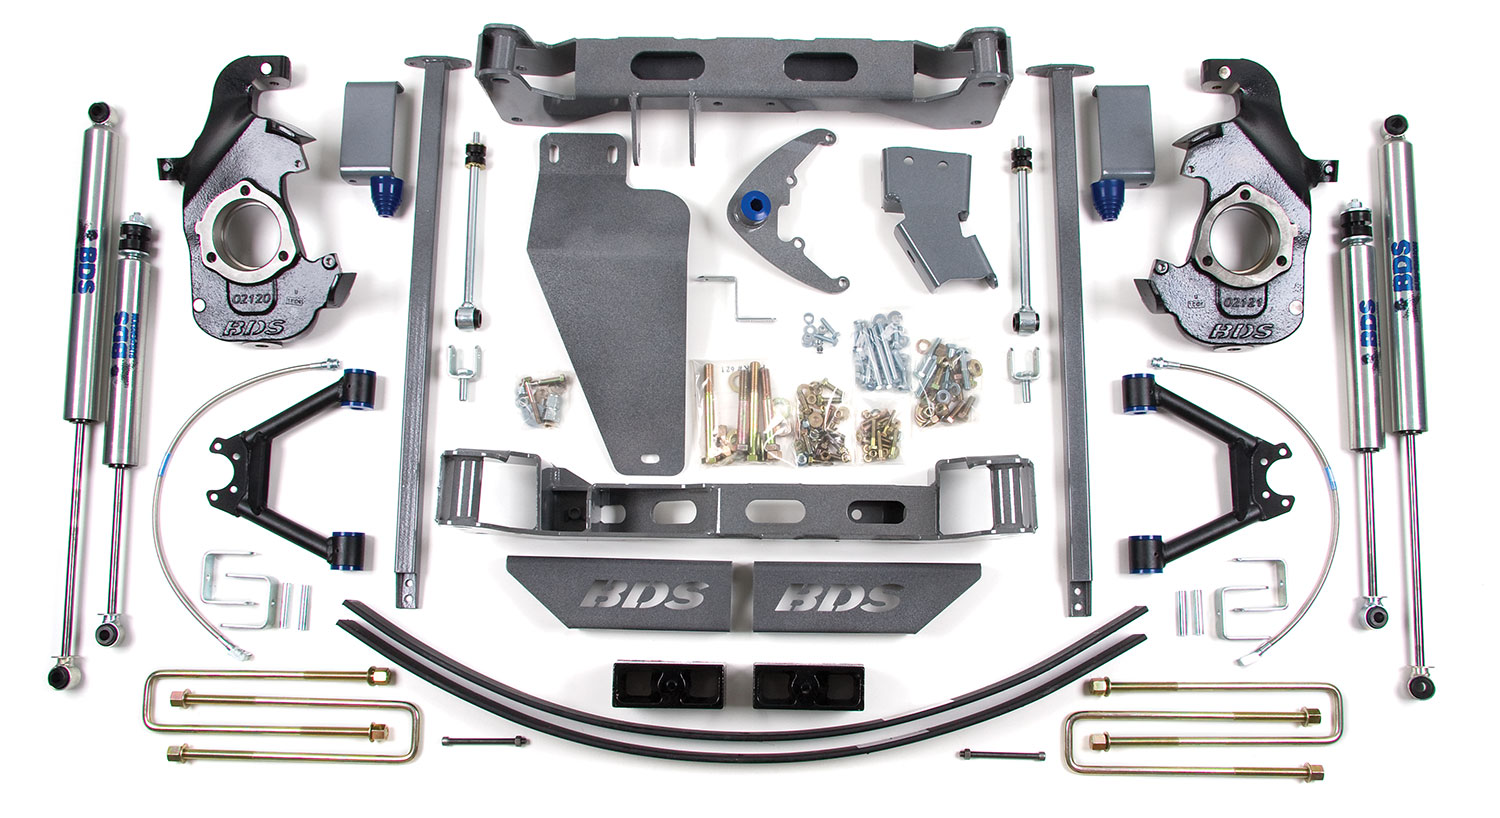 All Chevy 98 chevy lift kit : All Chevy » 88-98 Chevy Lift Kit - Old Chevy Photos Collection ...